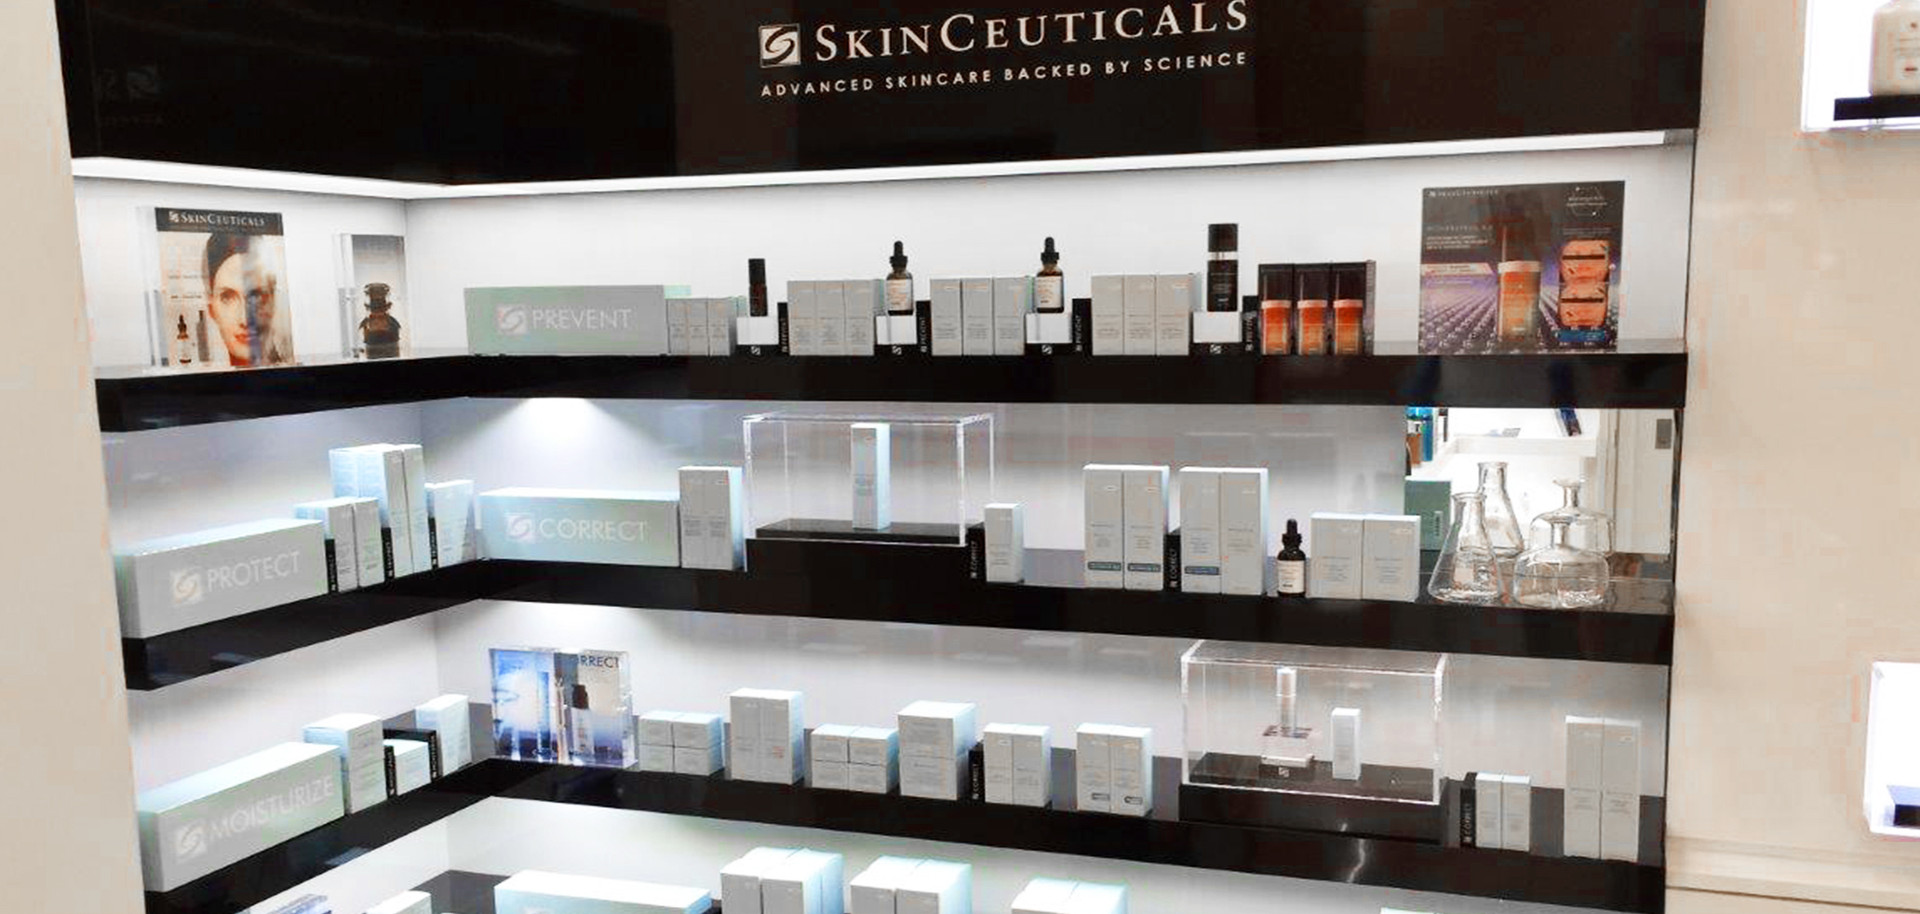 Skinceuticals Project Skin Store